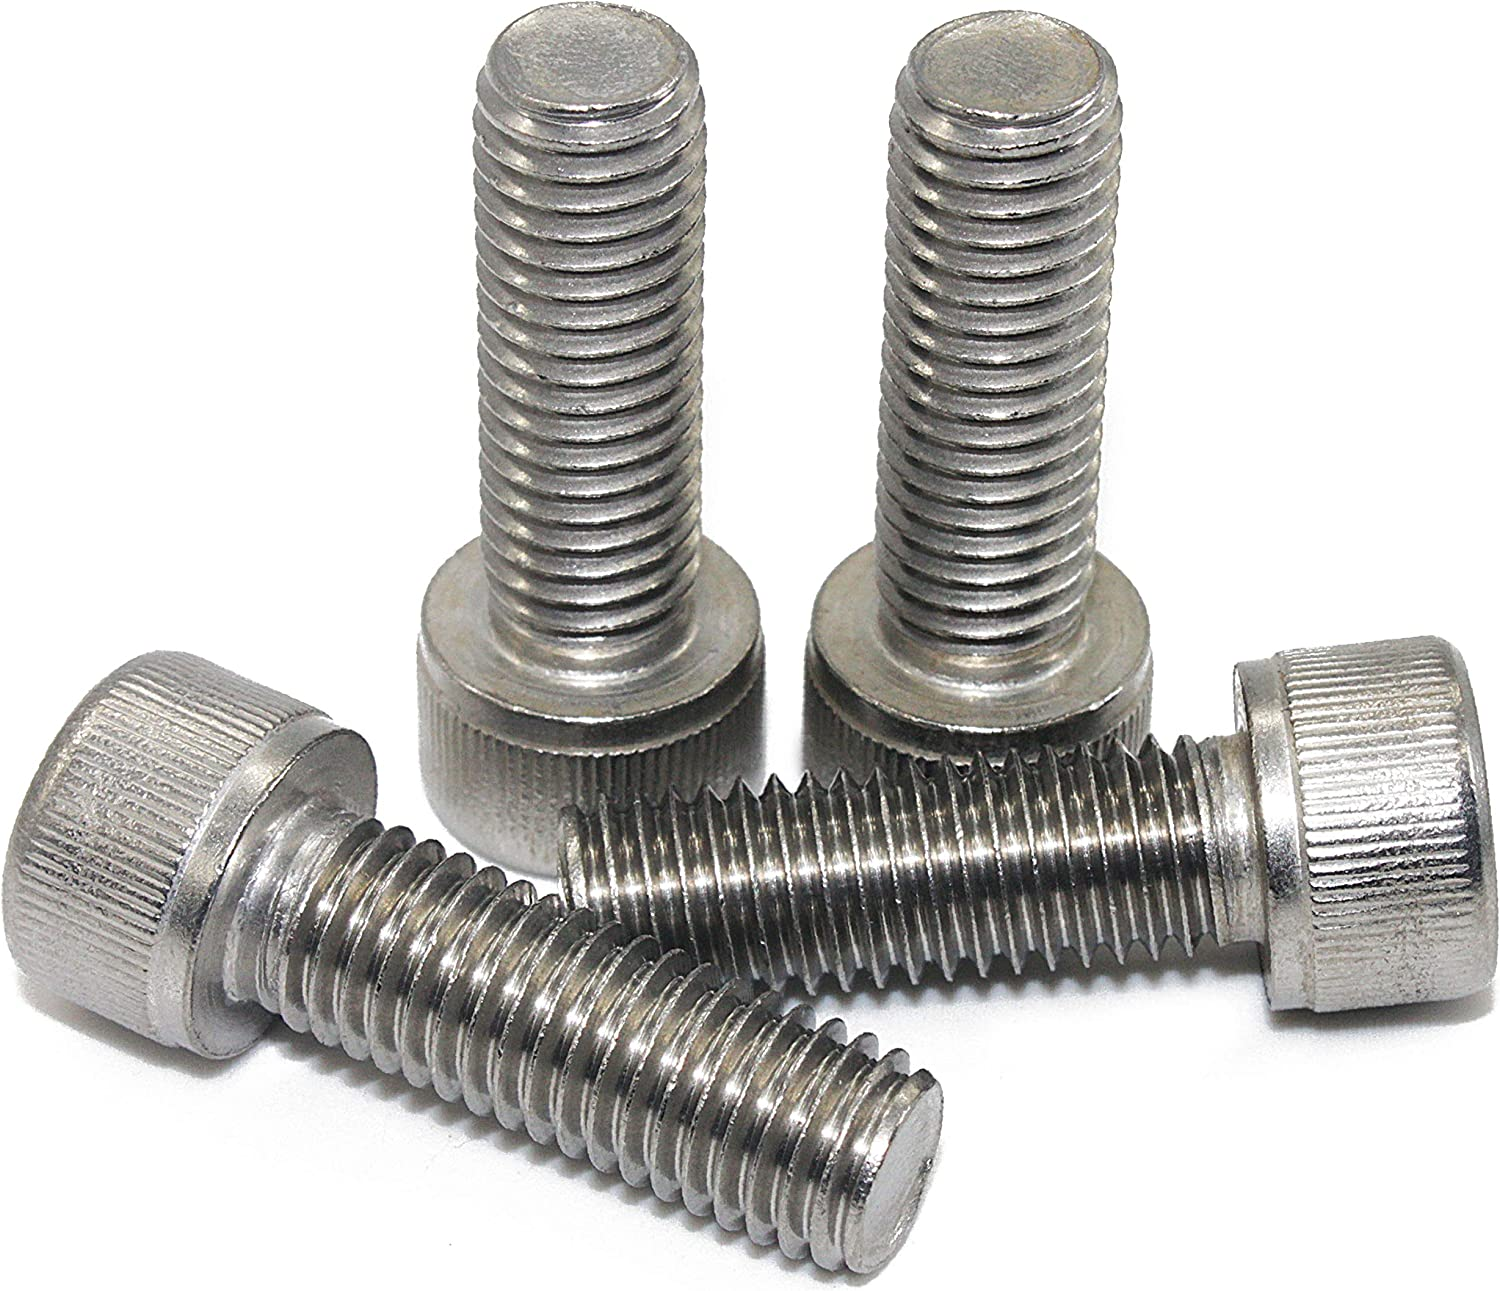 Din 912 AISI 304 Stainless Steel Full Thread Quantity 50 Machine Thread Bright Finish Fullerkreg 0.8mm Pitch M5 x 12MM Socket Head Cap Screws Allen Socket Drive 18-8